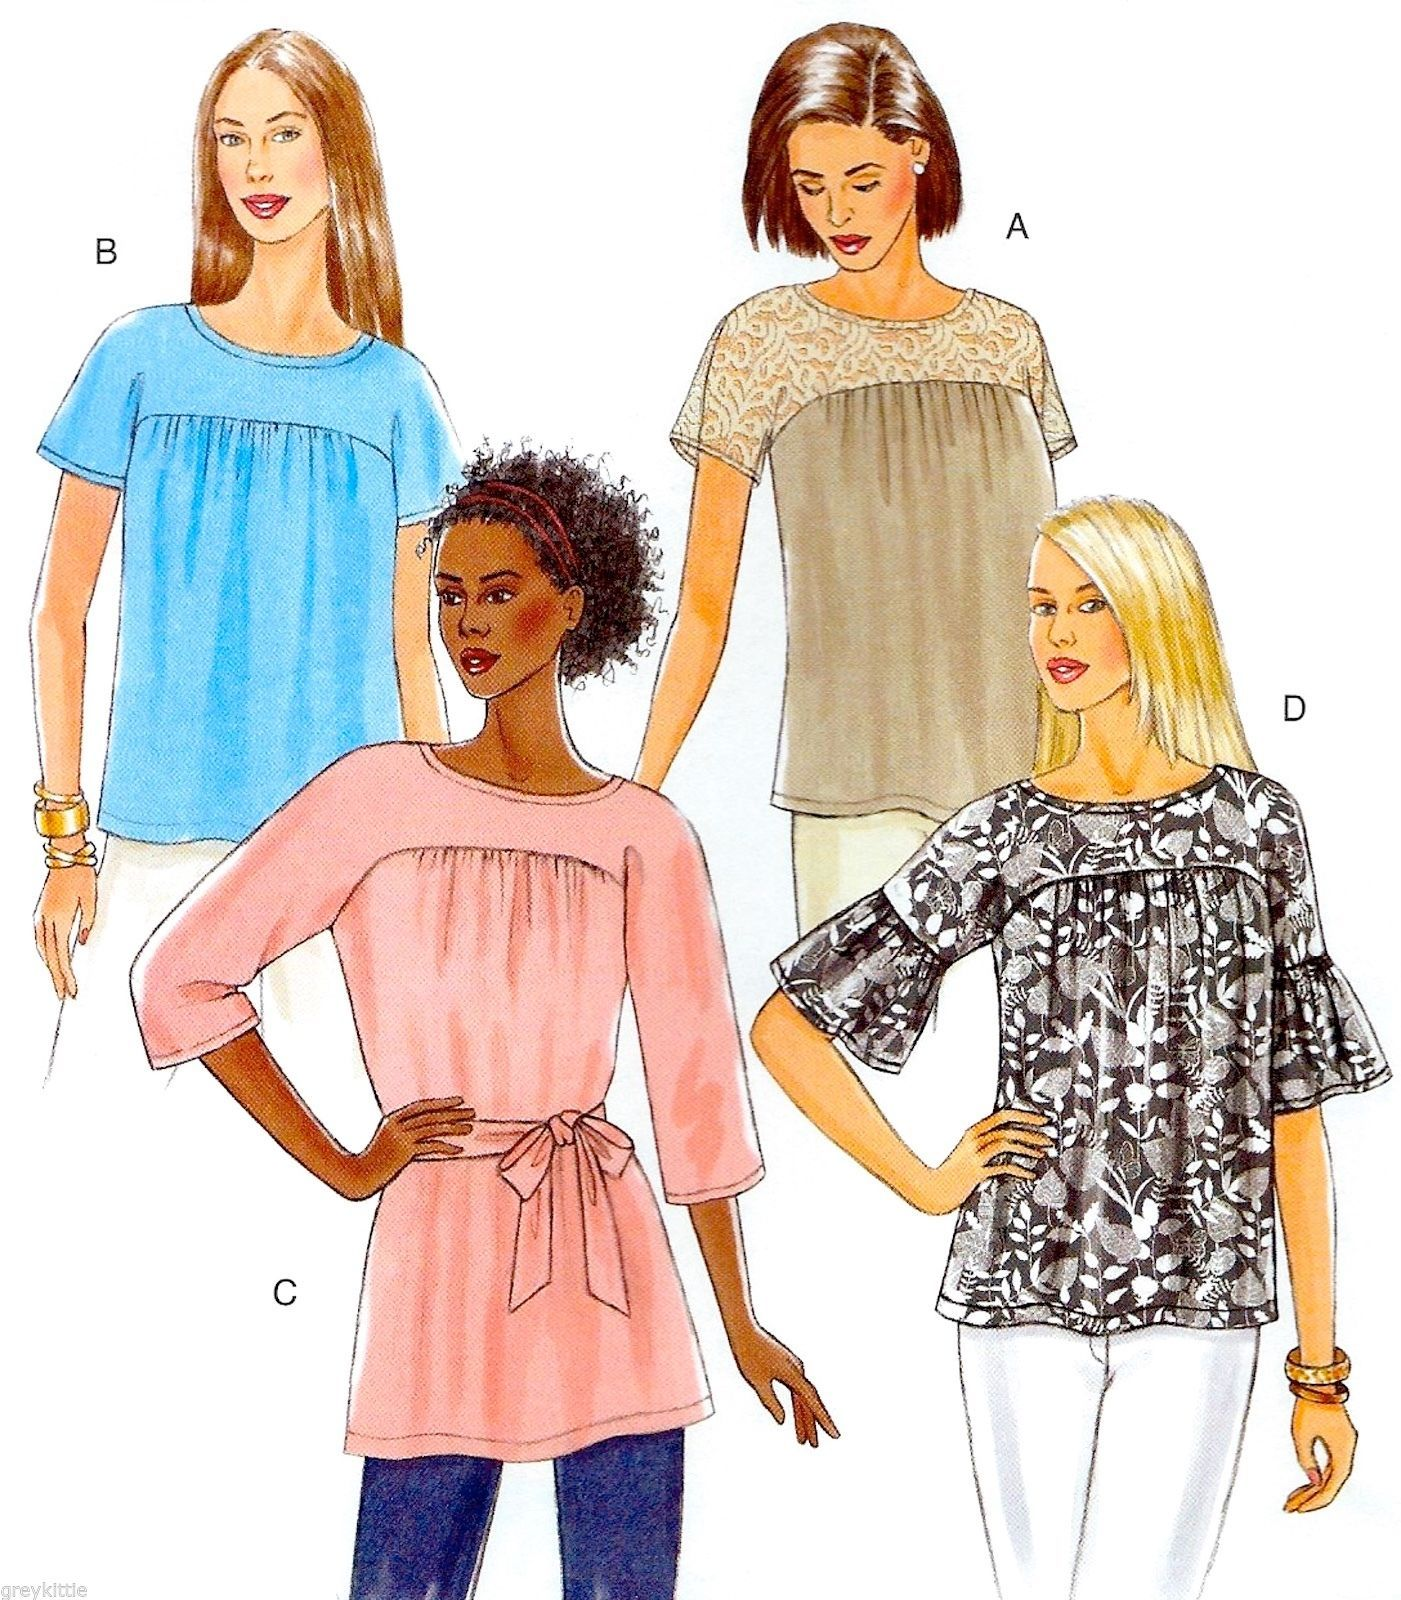 Unused collectable plus size 16 26 misses tops sewing pattern unused collectable plus size 16 26 misses tops sewing pattern butterick 5356 ebay jeuxipadfo Choice Image